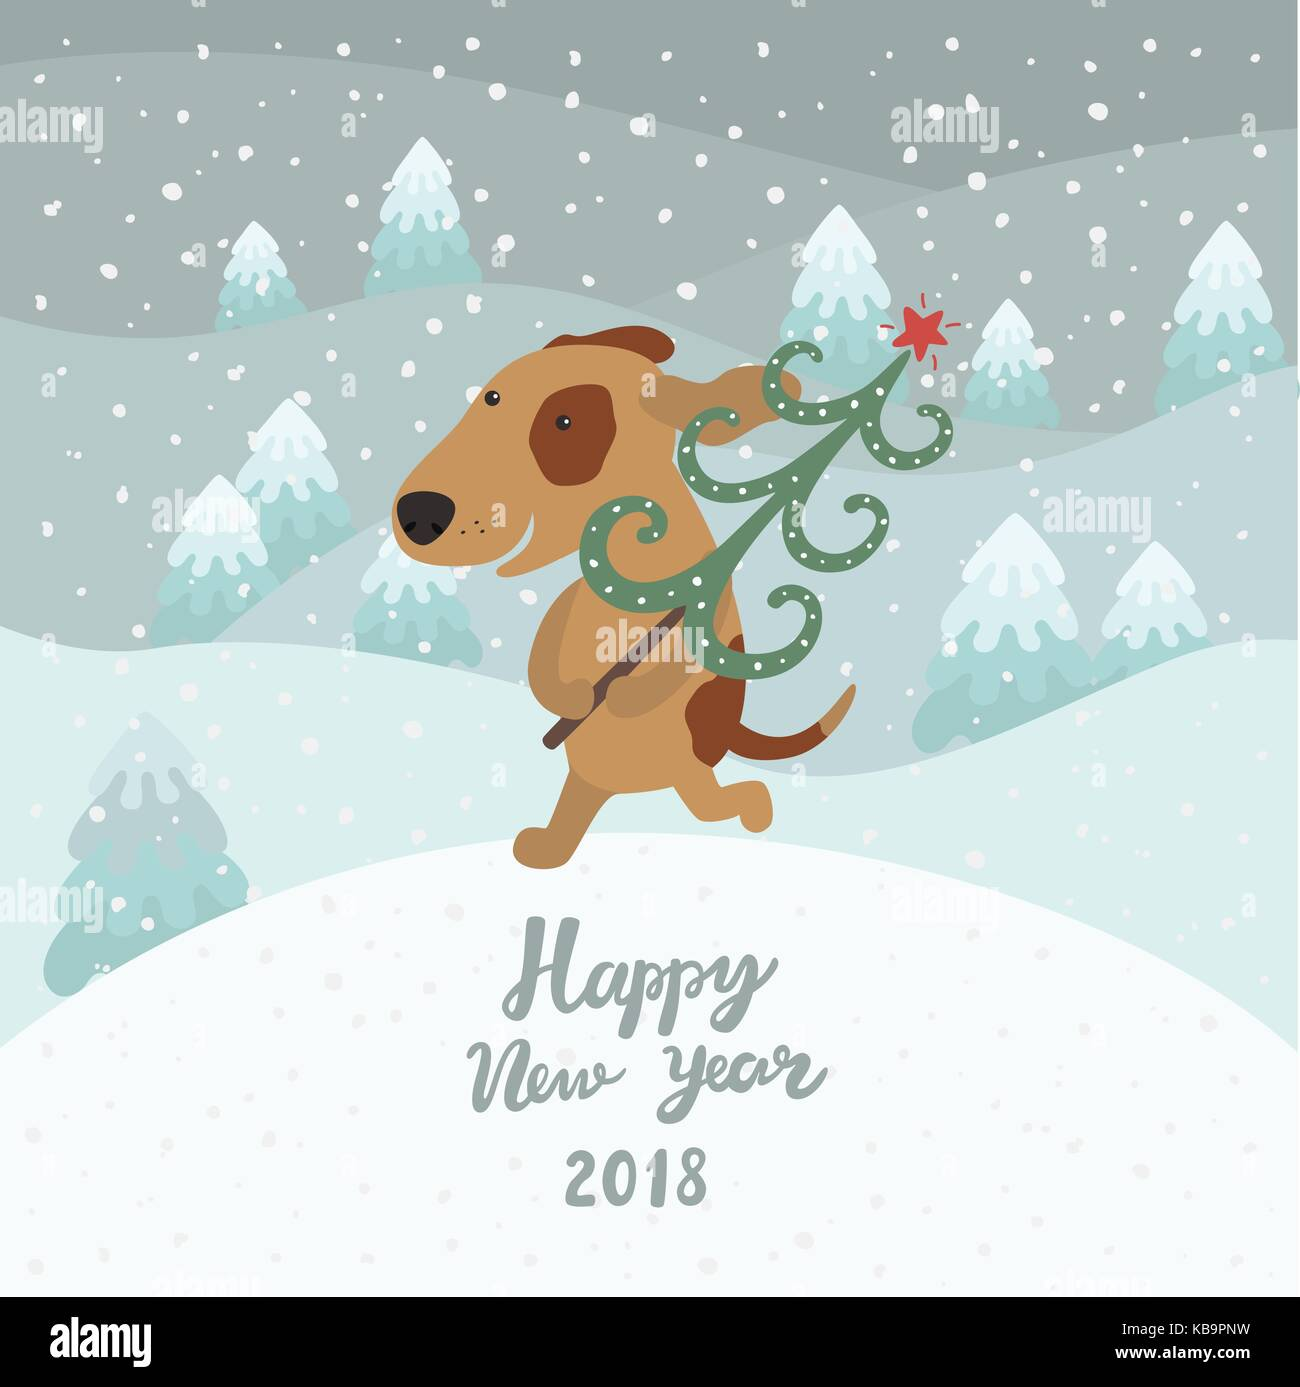 Cute Dog Carries Christmas Tree Happy New Year 2018 Stock Vector